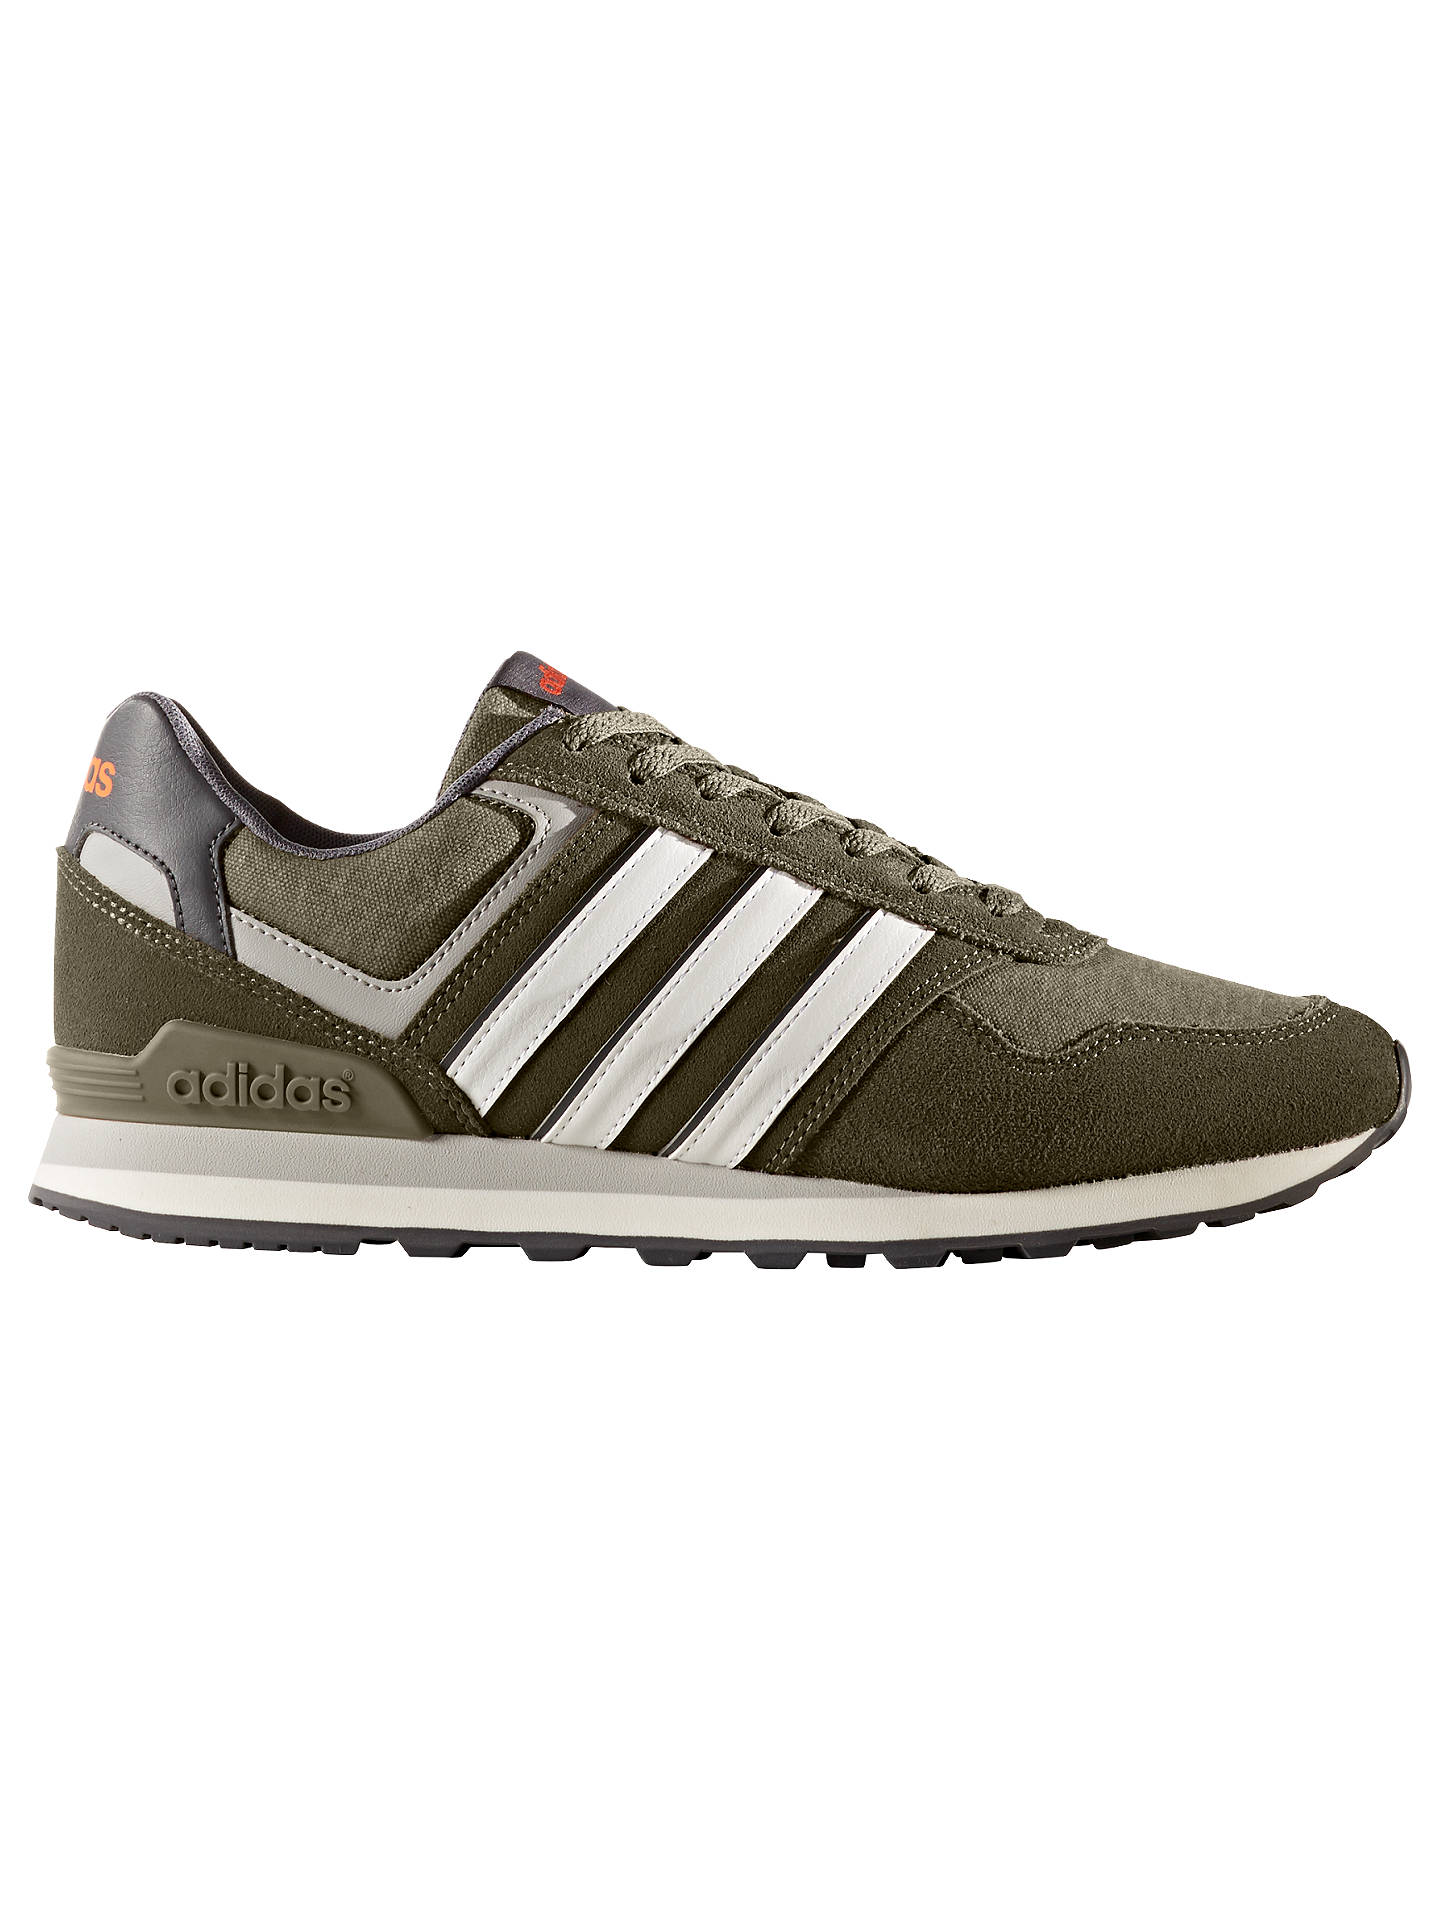 adidas Neo 10K Casual Men s Trainers at John Lewis   Partners 8d493b46638